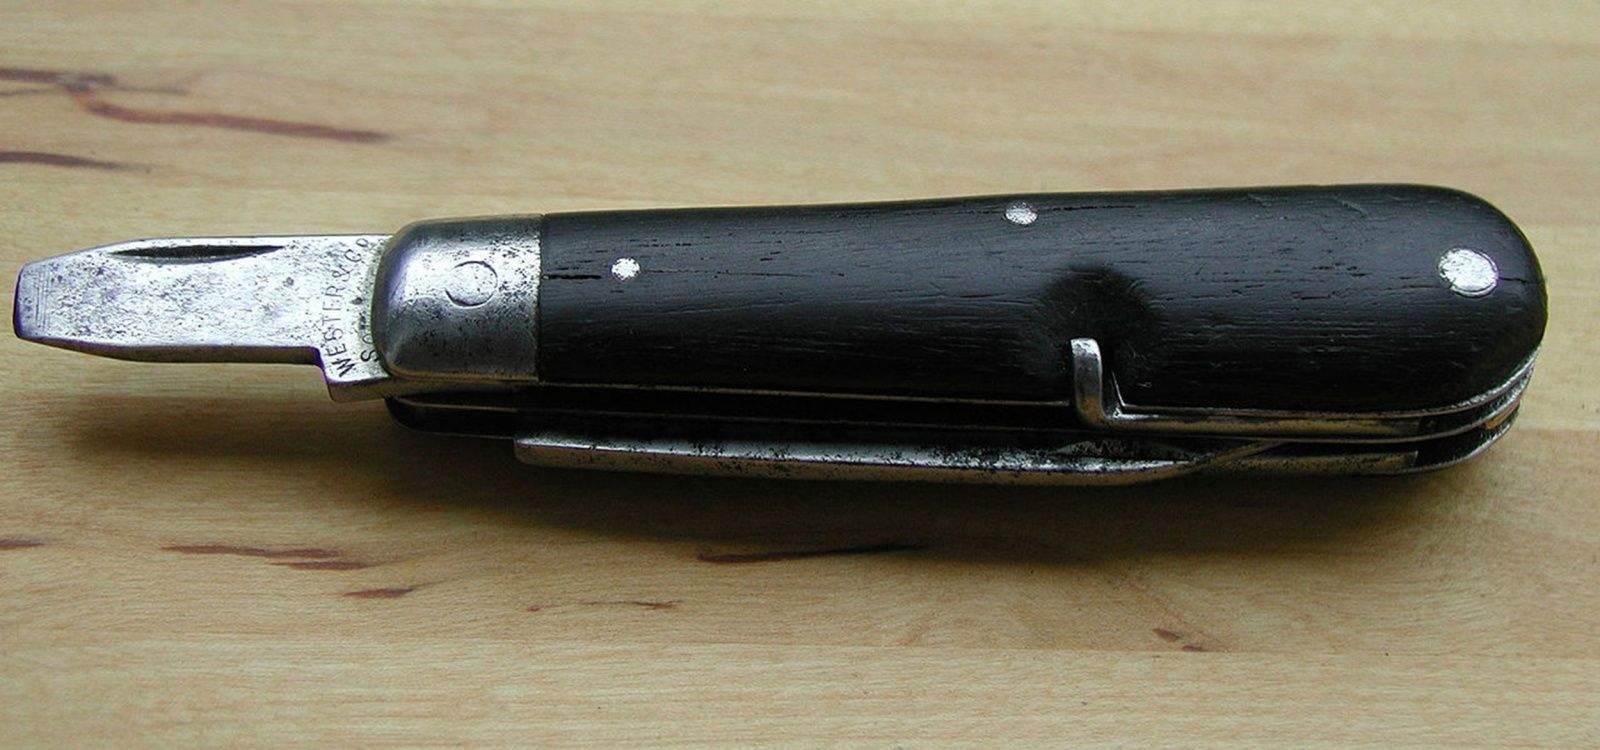 The first Swiss Army Knife, which was issued to soldiers in October of 1891.